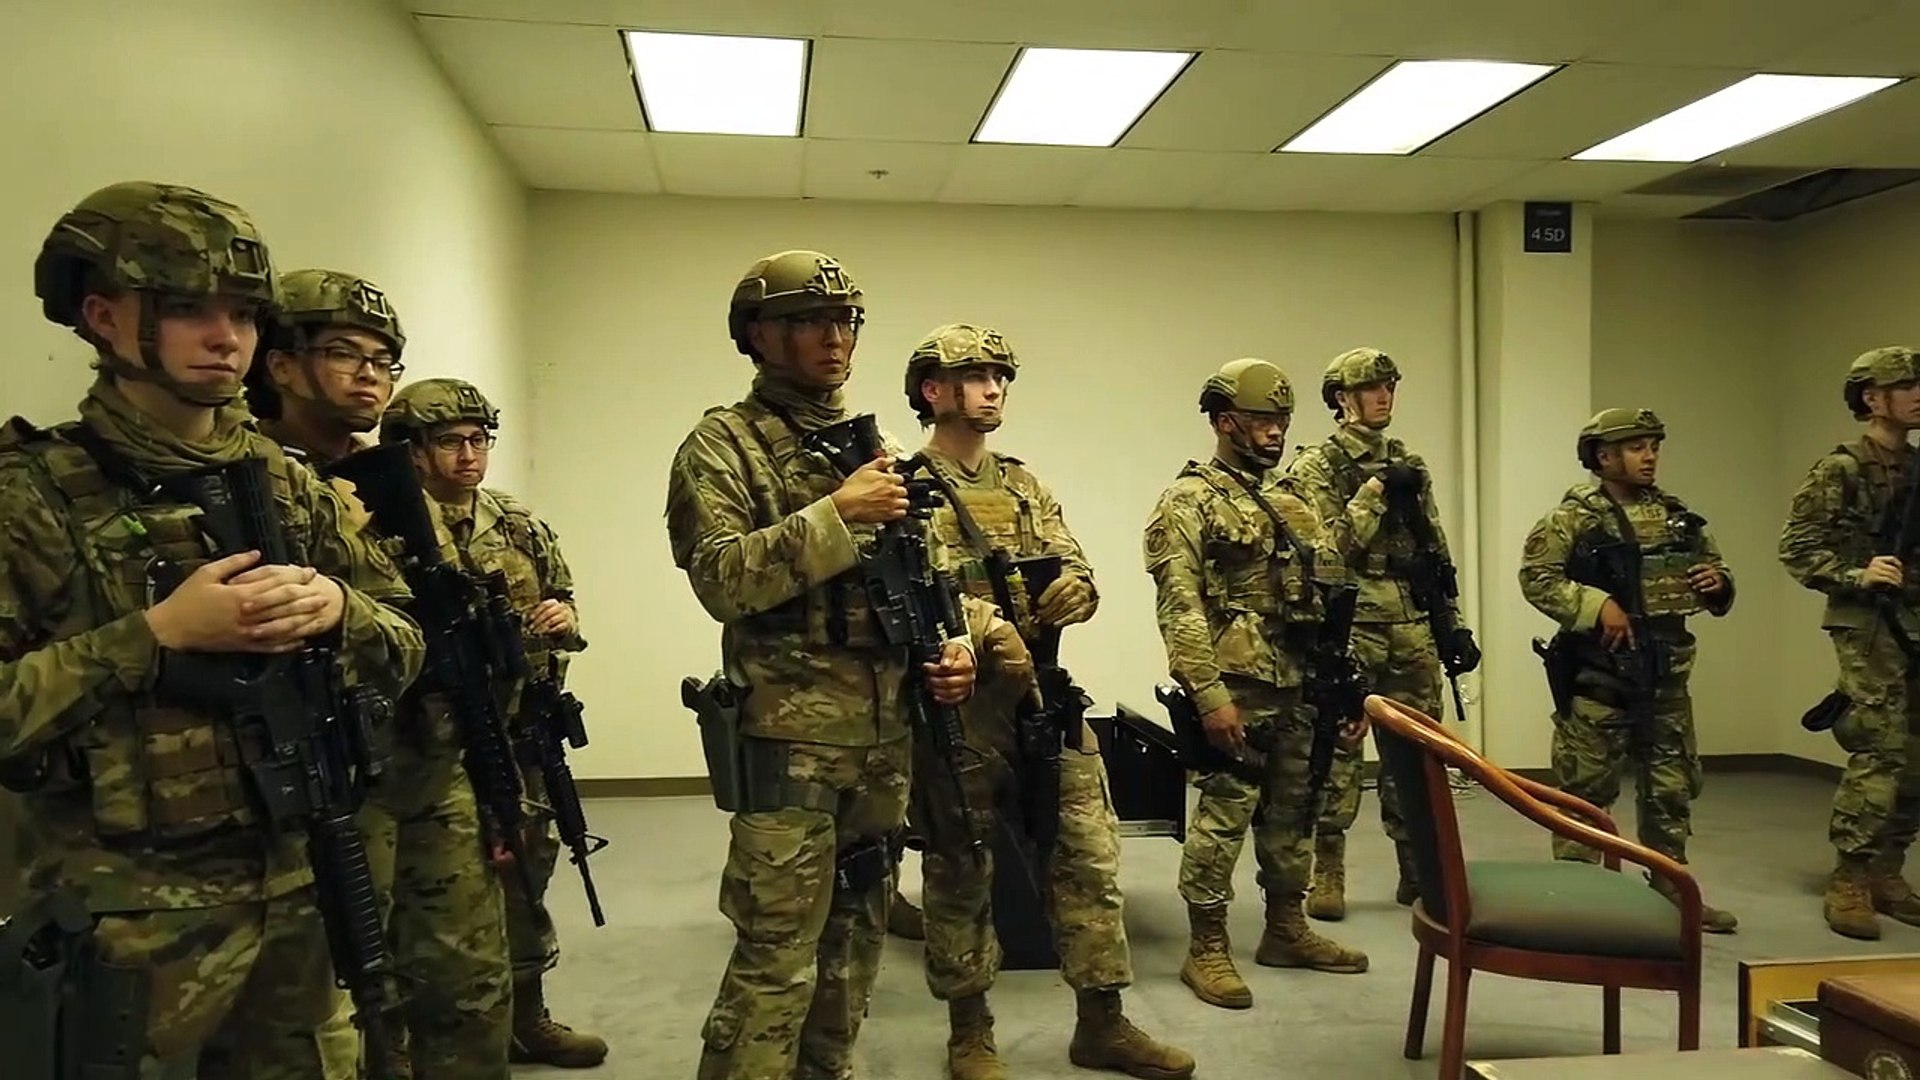 Eyes on Target • Robins Security Forces • Train in active Shooter Drill • 24 Sep 2020